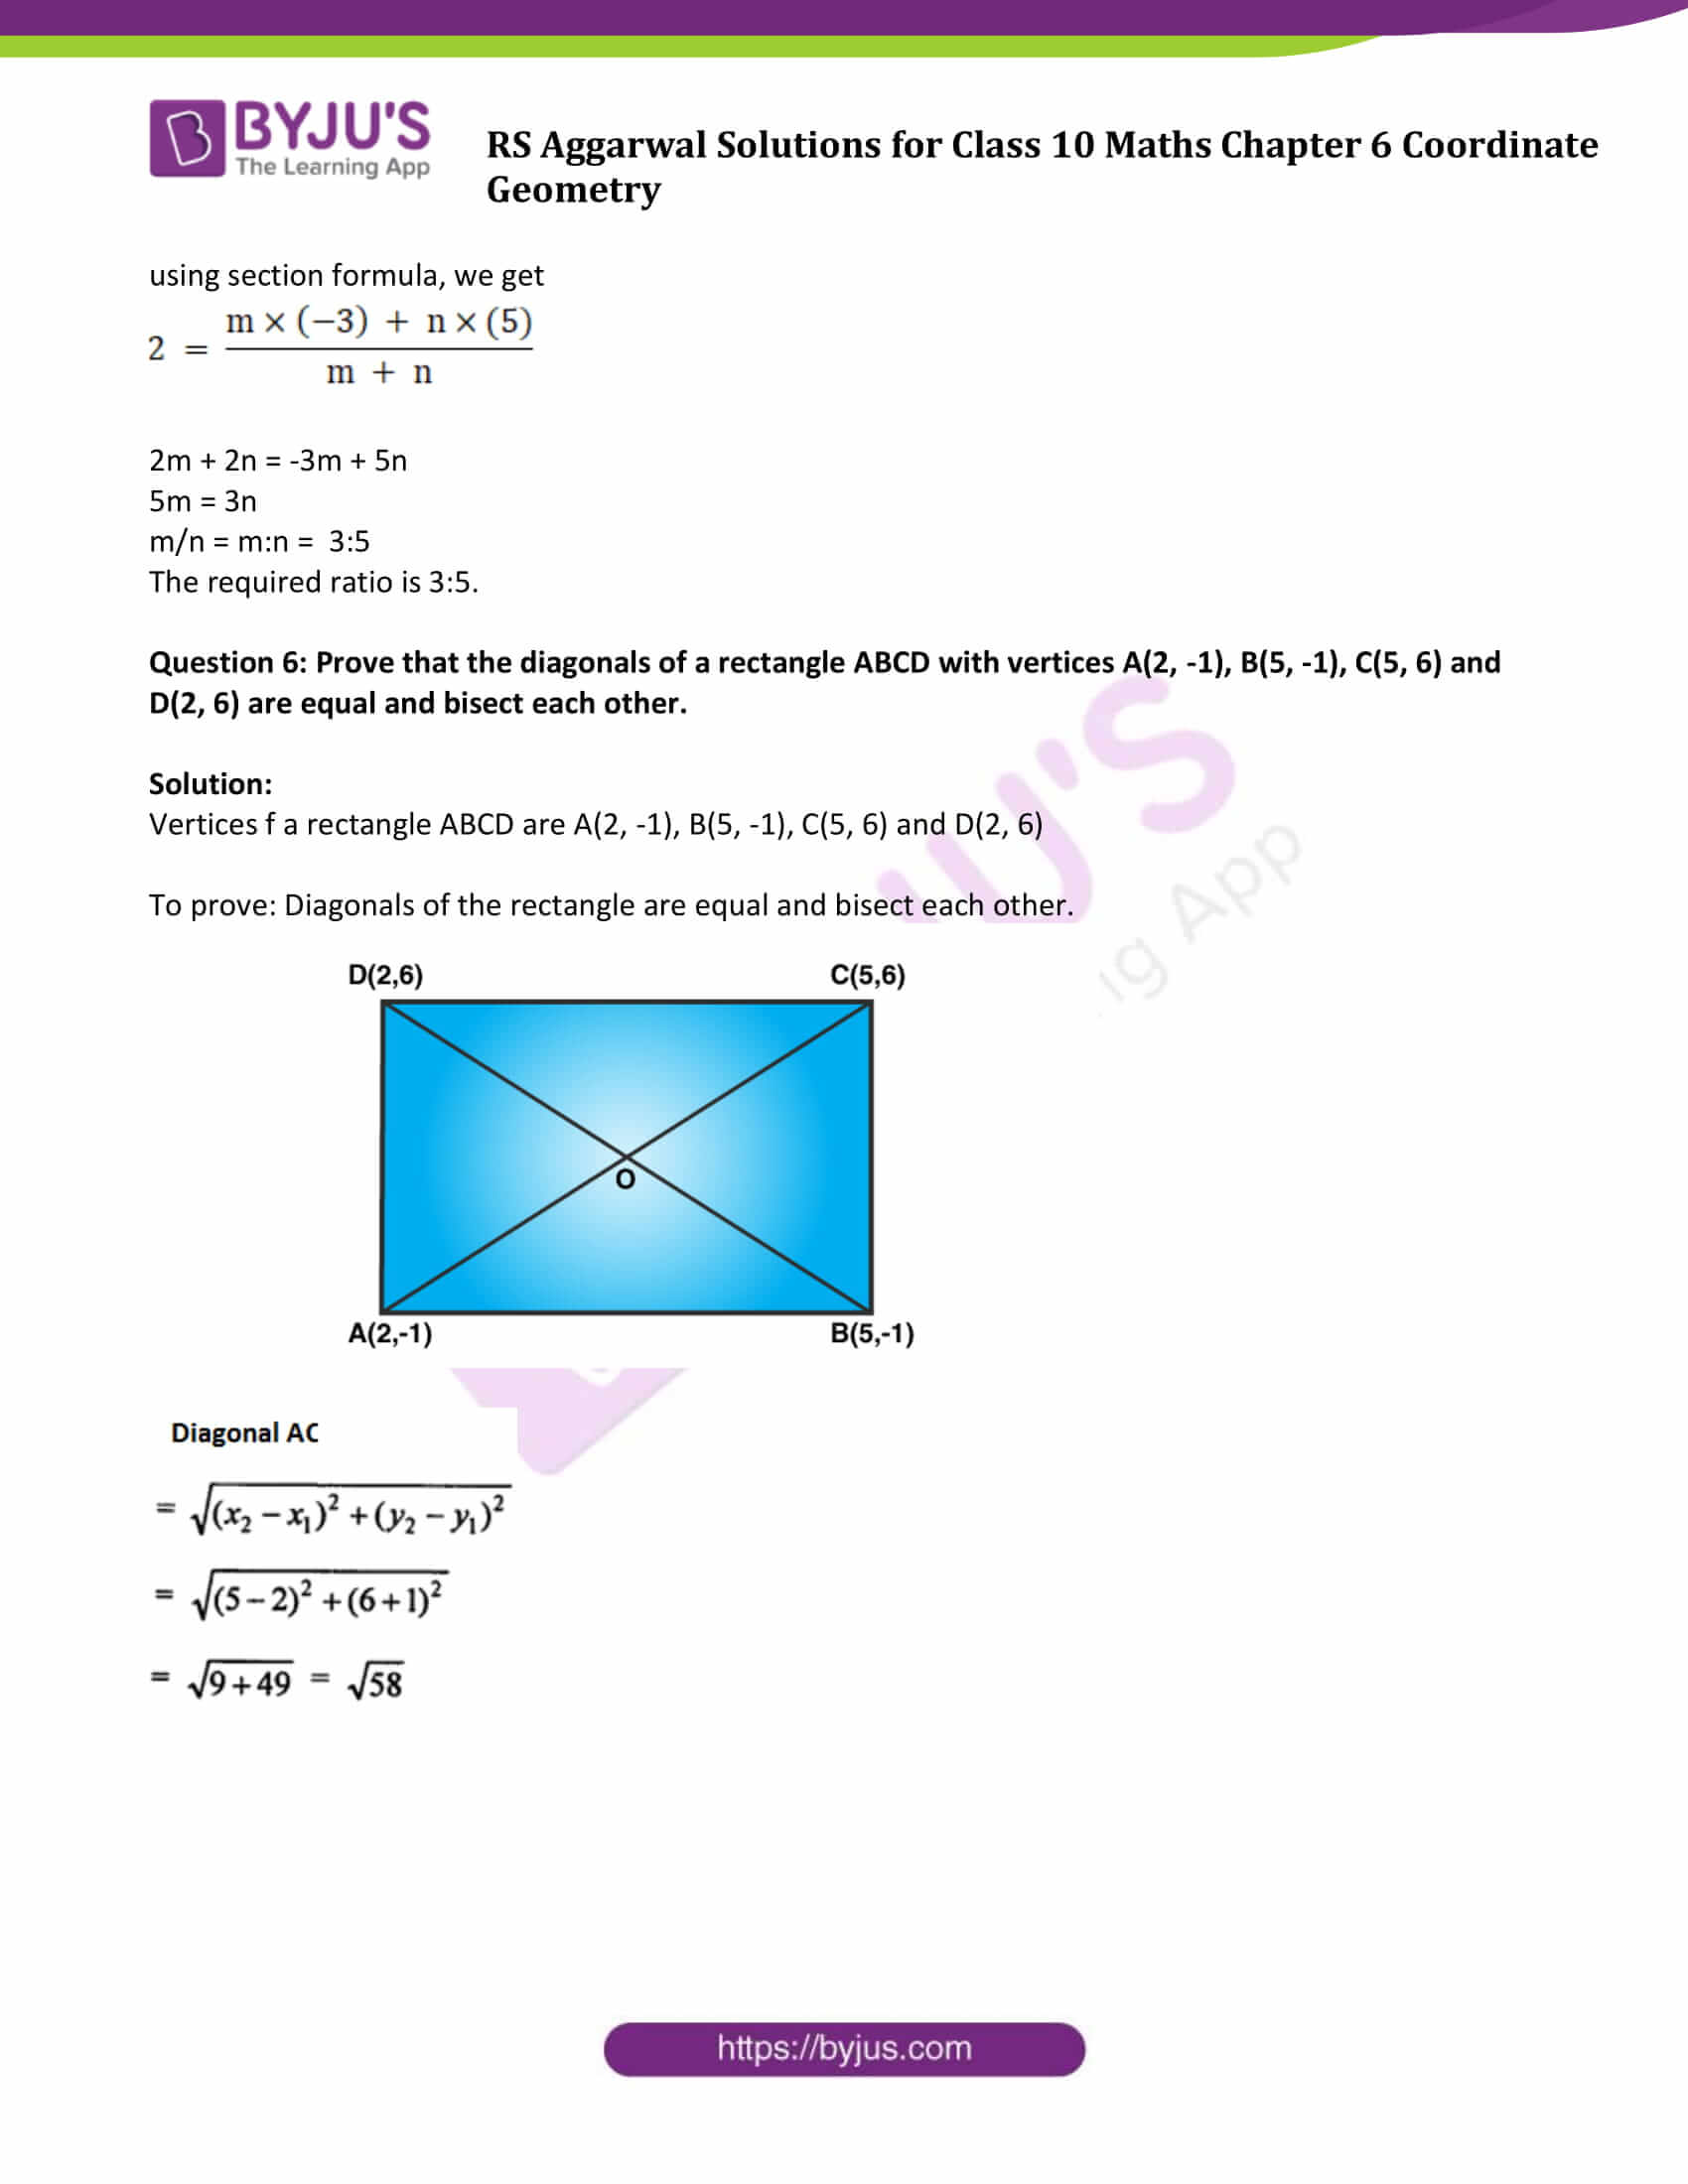 RS Aggarwal Sol class 10 Maths Chapter 6D